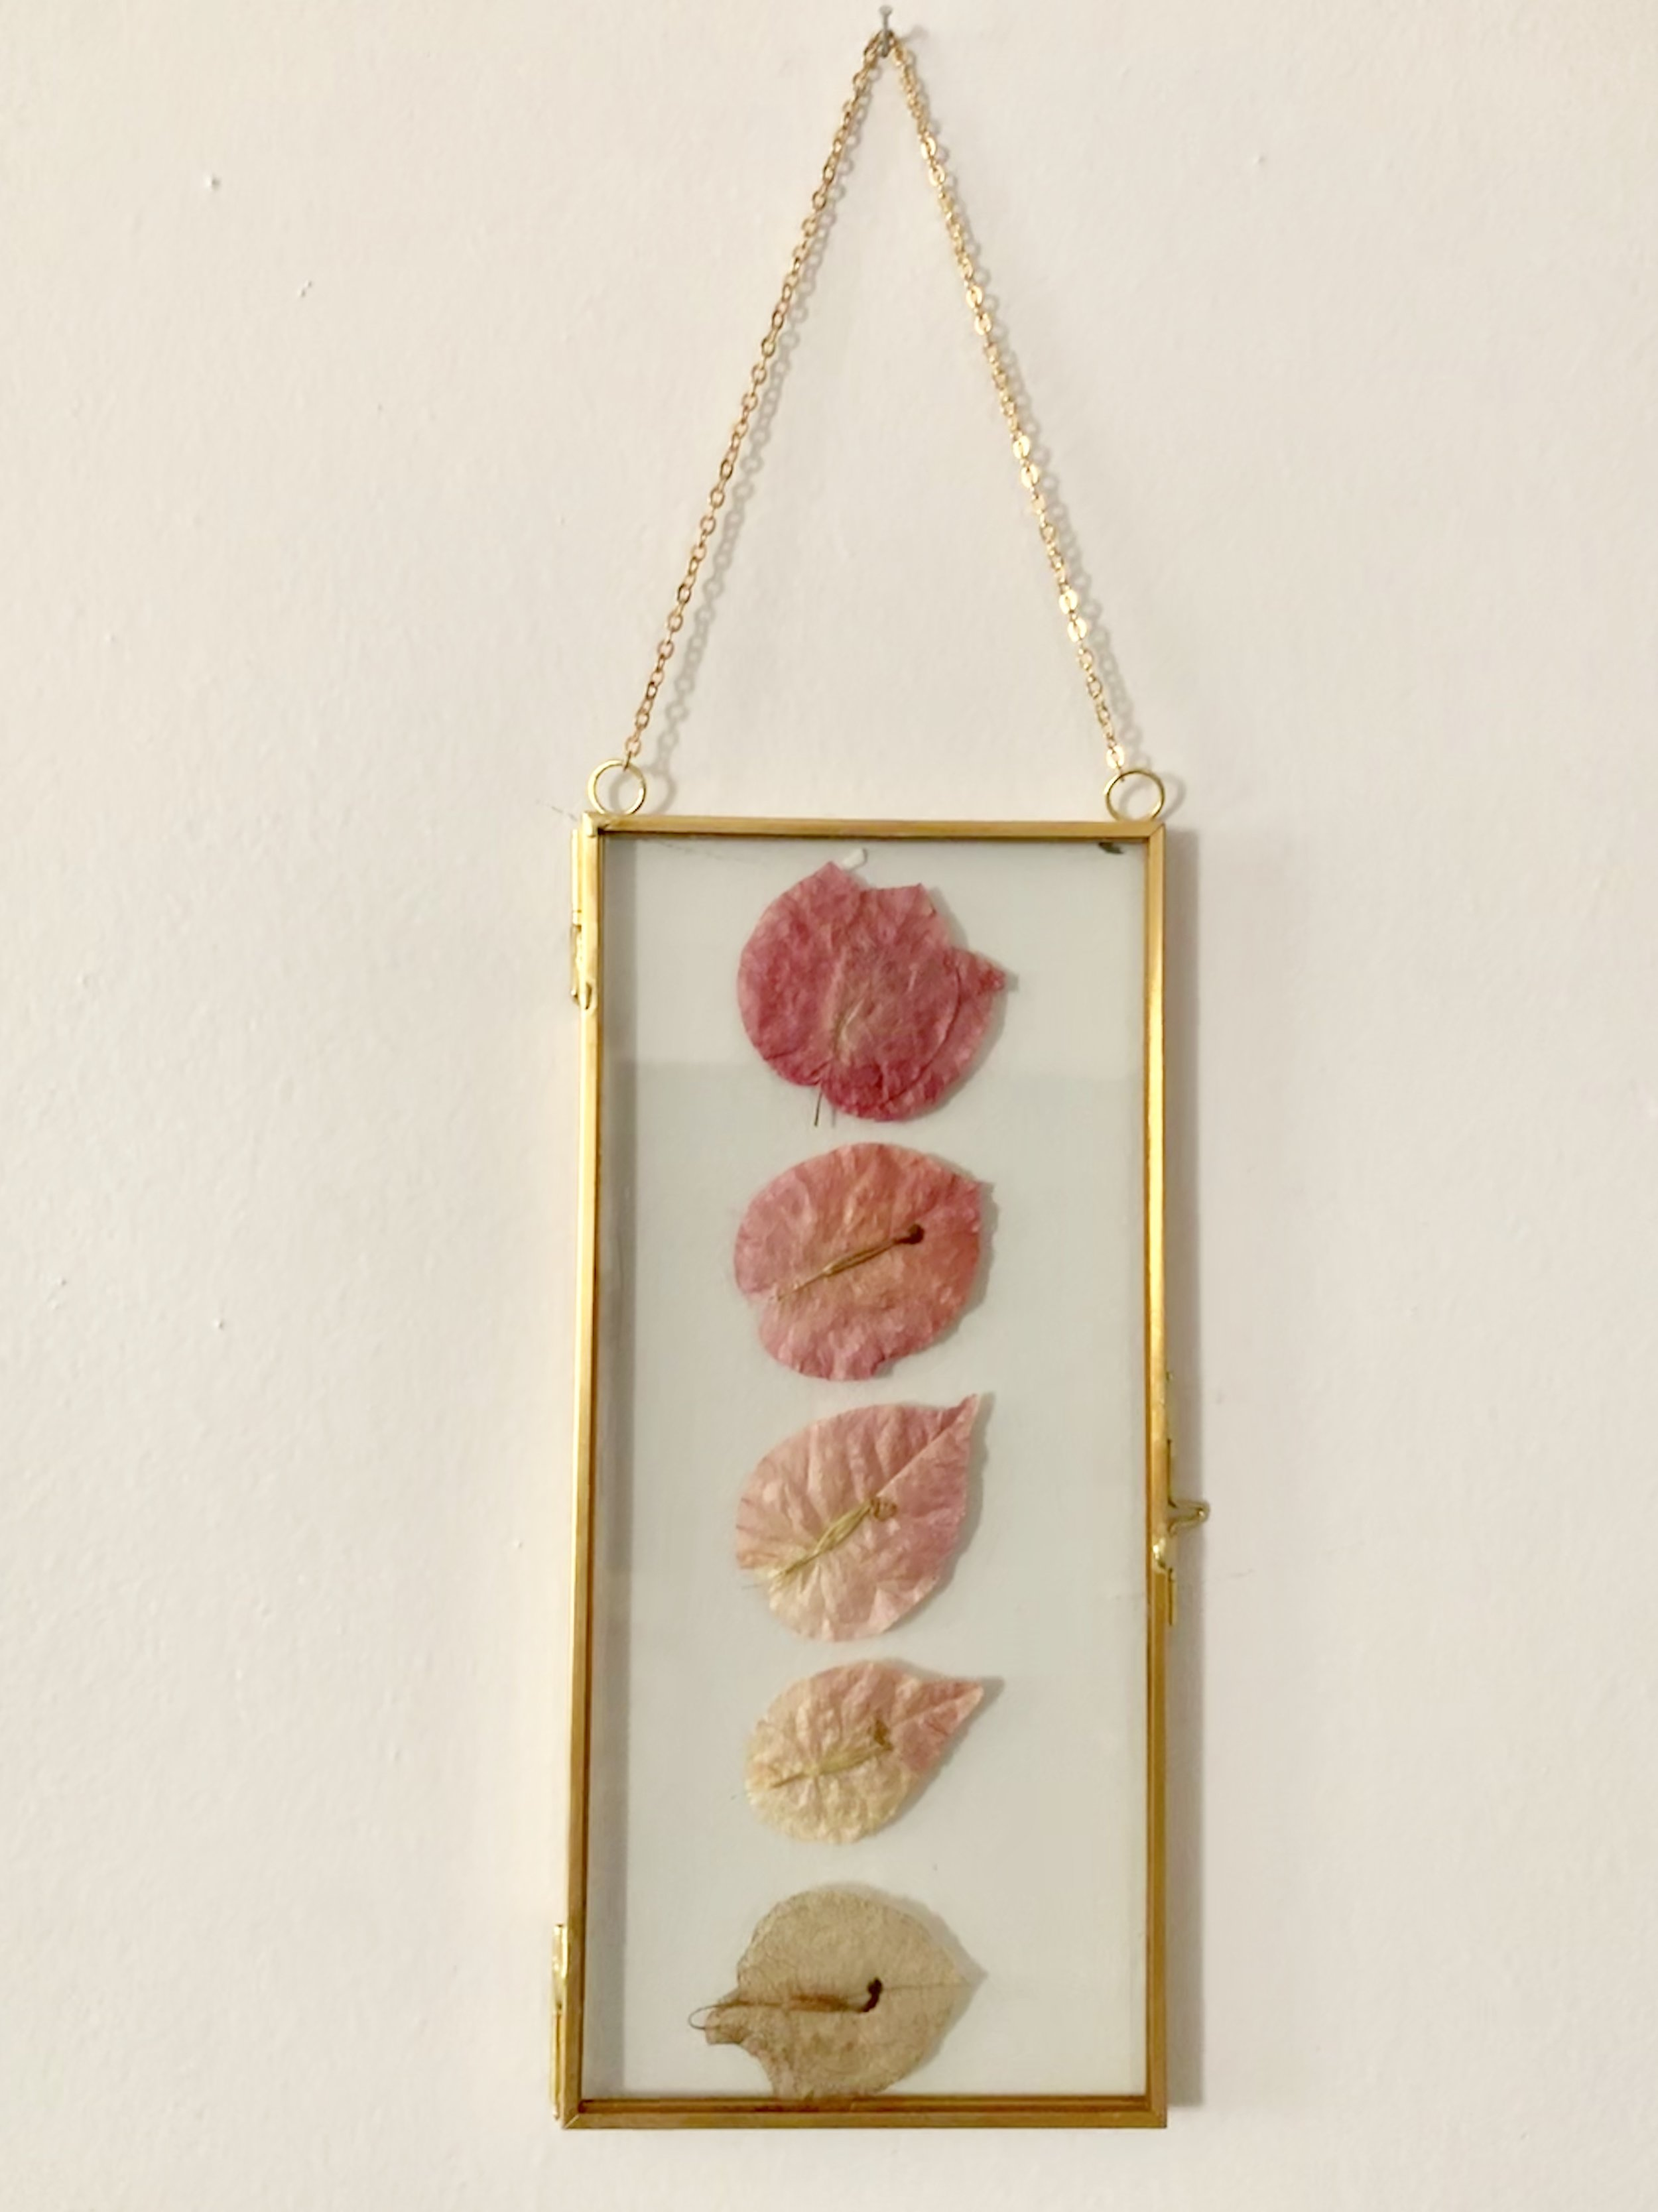 Pressed flowers from a honeymoon in Spain, Brass hanging photo keepsake. To have keepsake flowers preserved from weddings, proms, recitals, engagements, funerals, etc.pressed,  click here .